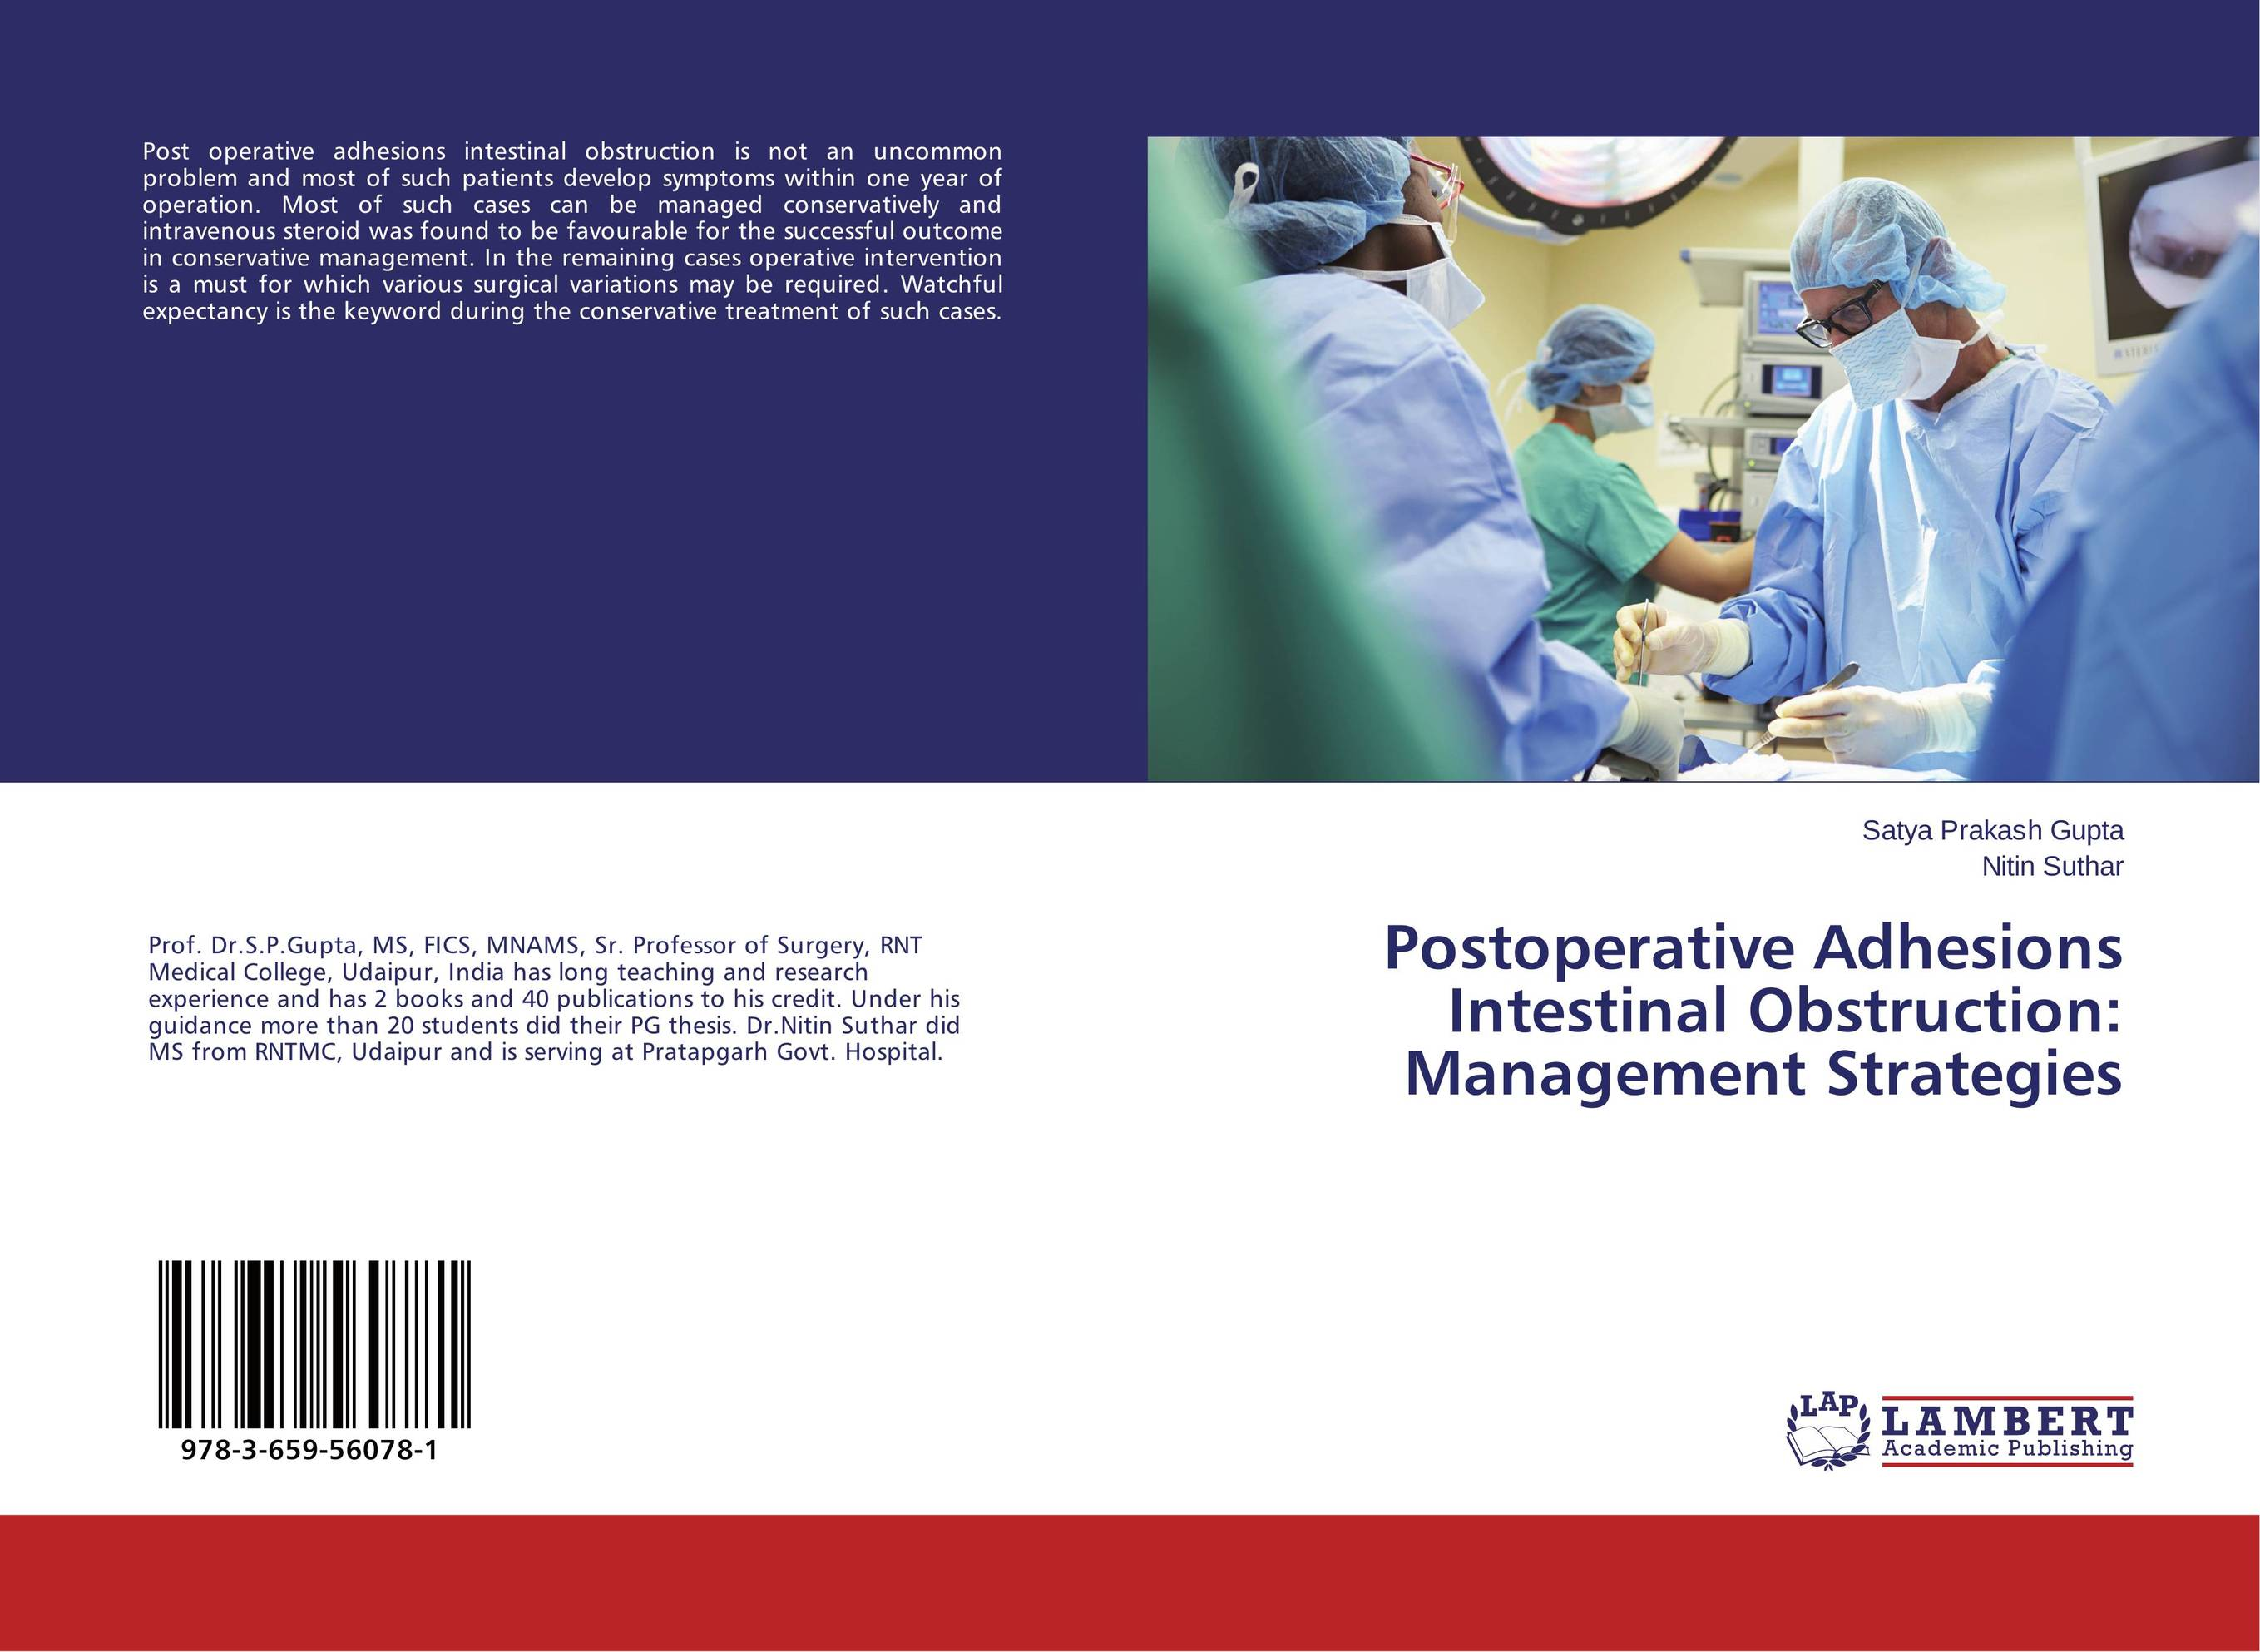 Postoperative Adhesions Intestinal Obstruction: Management Strategies the operative